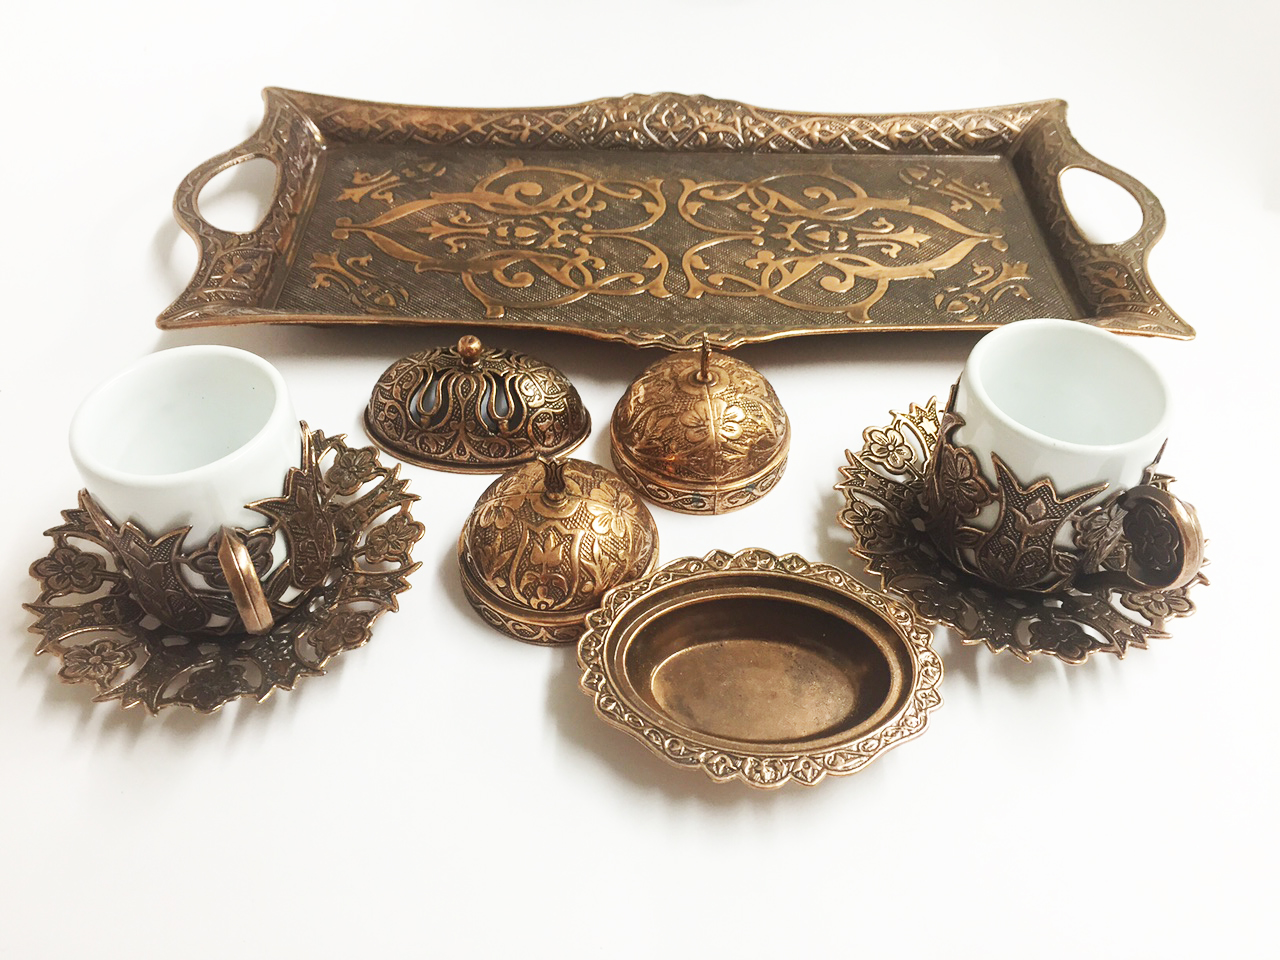 Ottoman Turkish Coffee Serving Gift Set Cups Saucers Tray